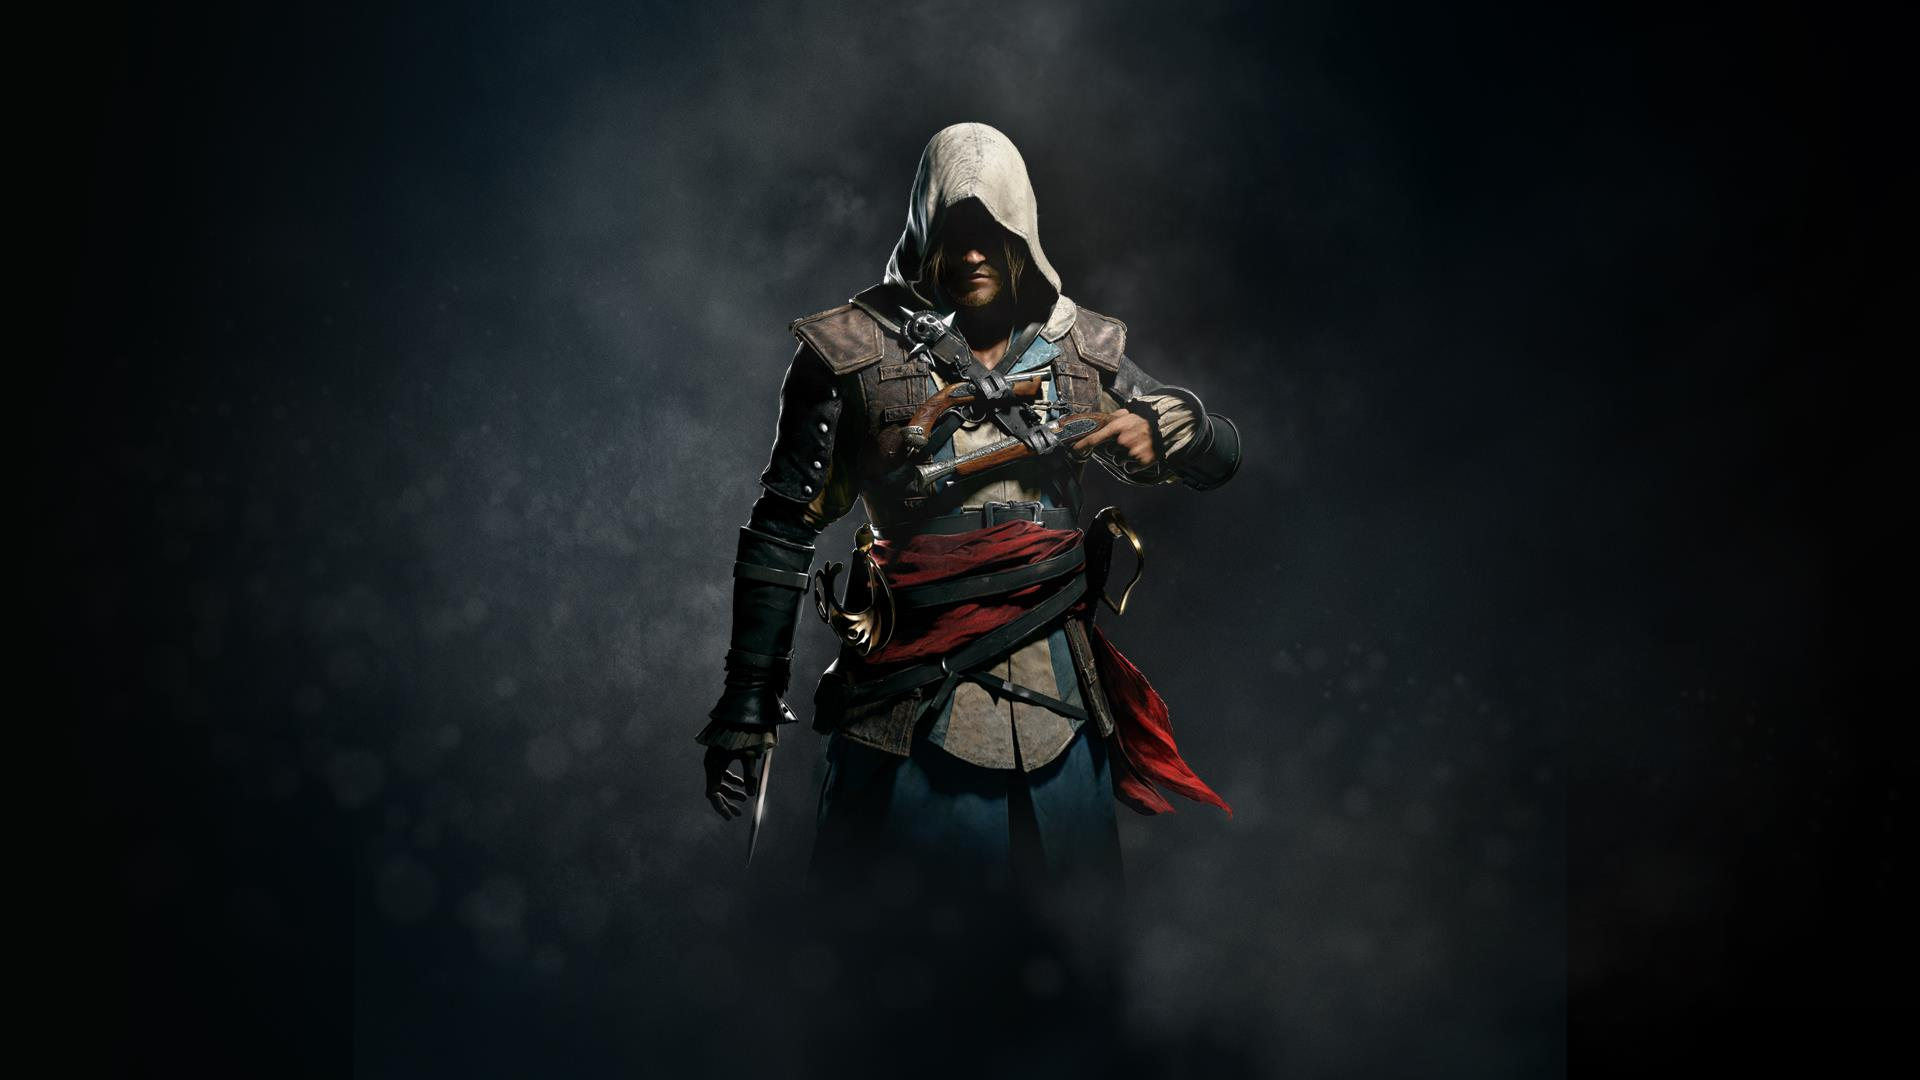 Cartographer in Assassin's Creed IV: Black Flag